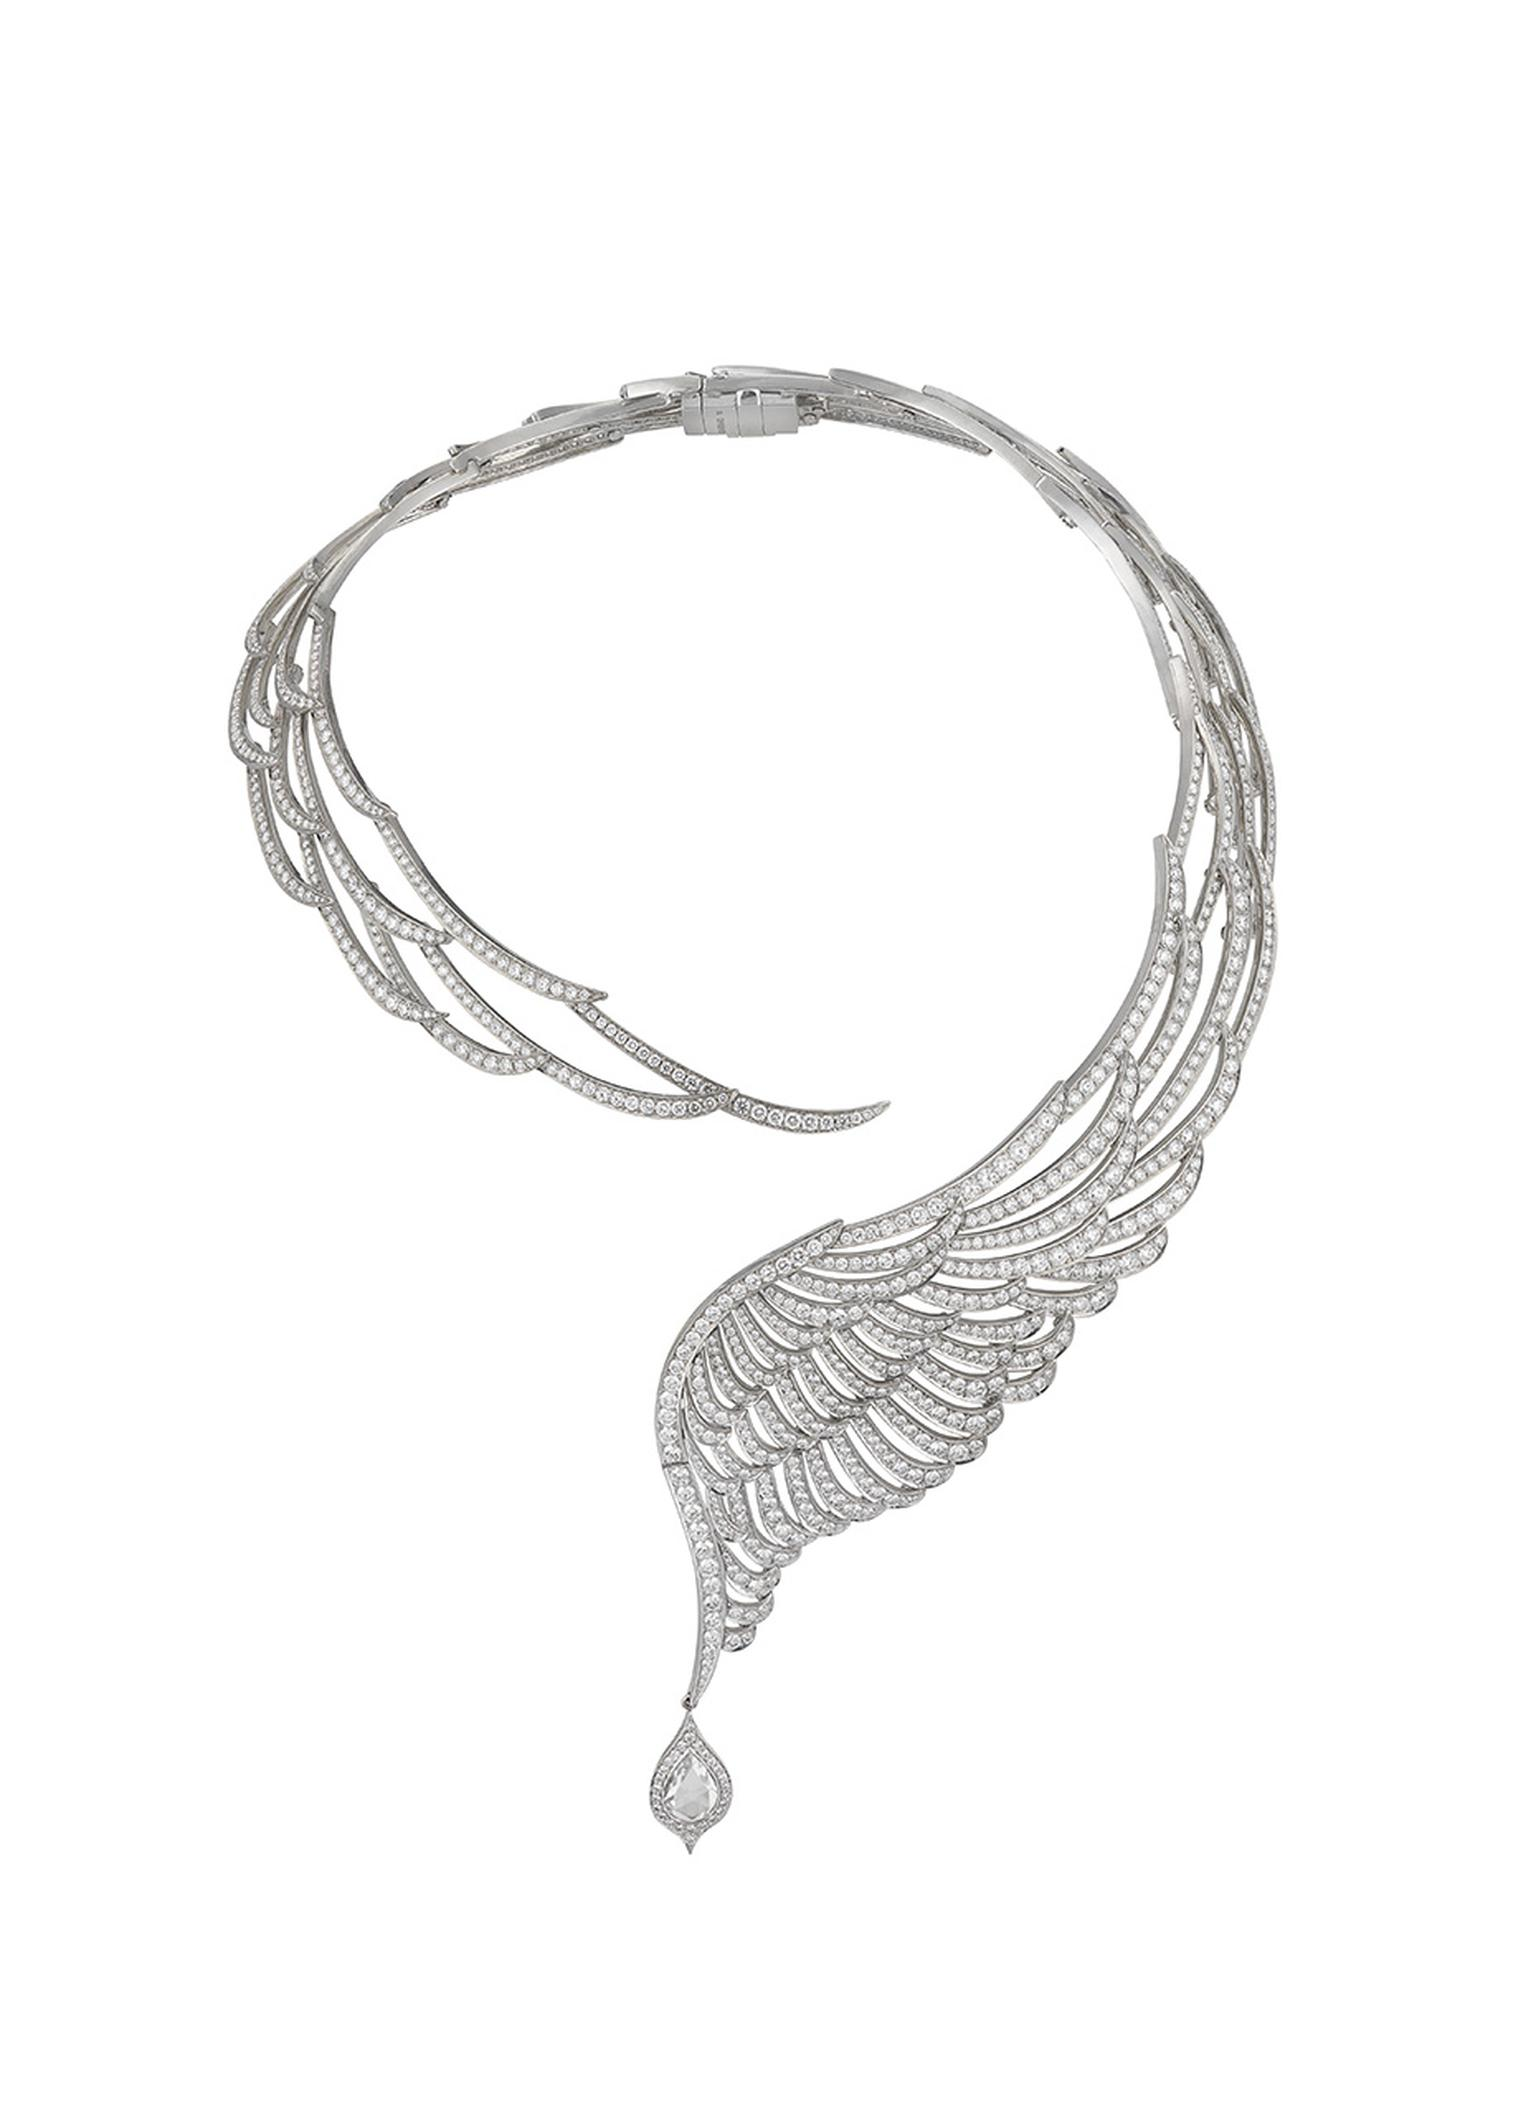 Garrard necklace with 40ct of diamonds, set in white gold, from the 10th Anniversary Wings High Jewellery collection